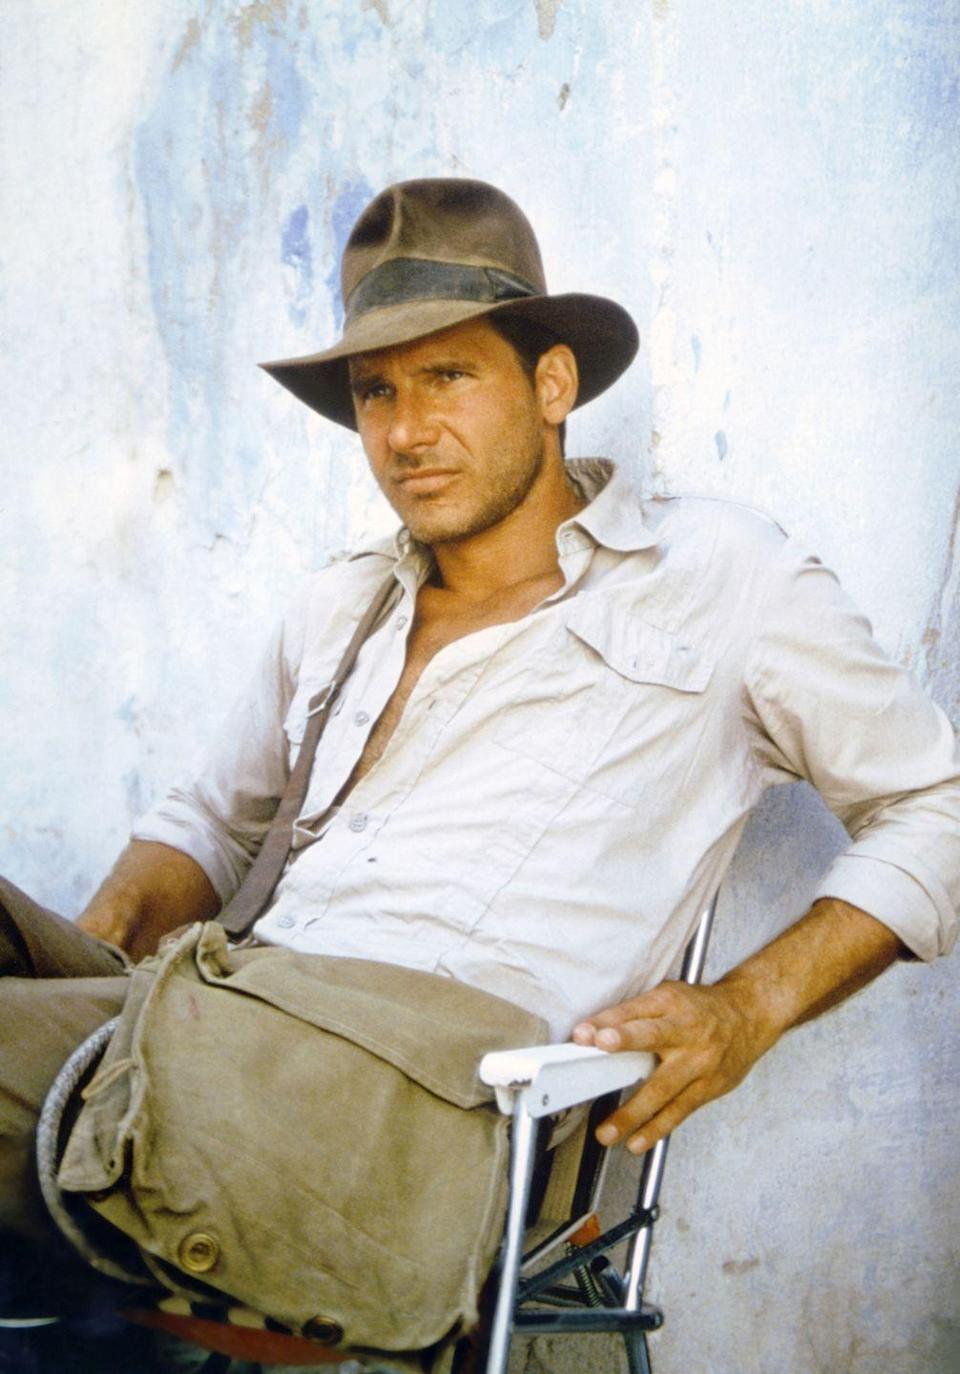 <p>Harrison Ford on the set of <em>Raiders of the Lost Ark</em>.</p>